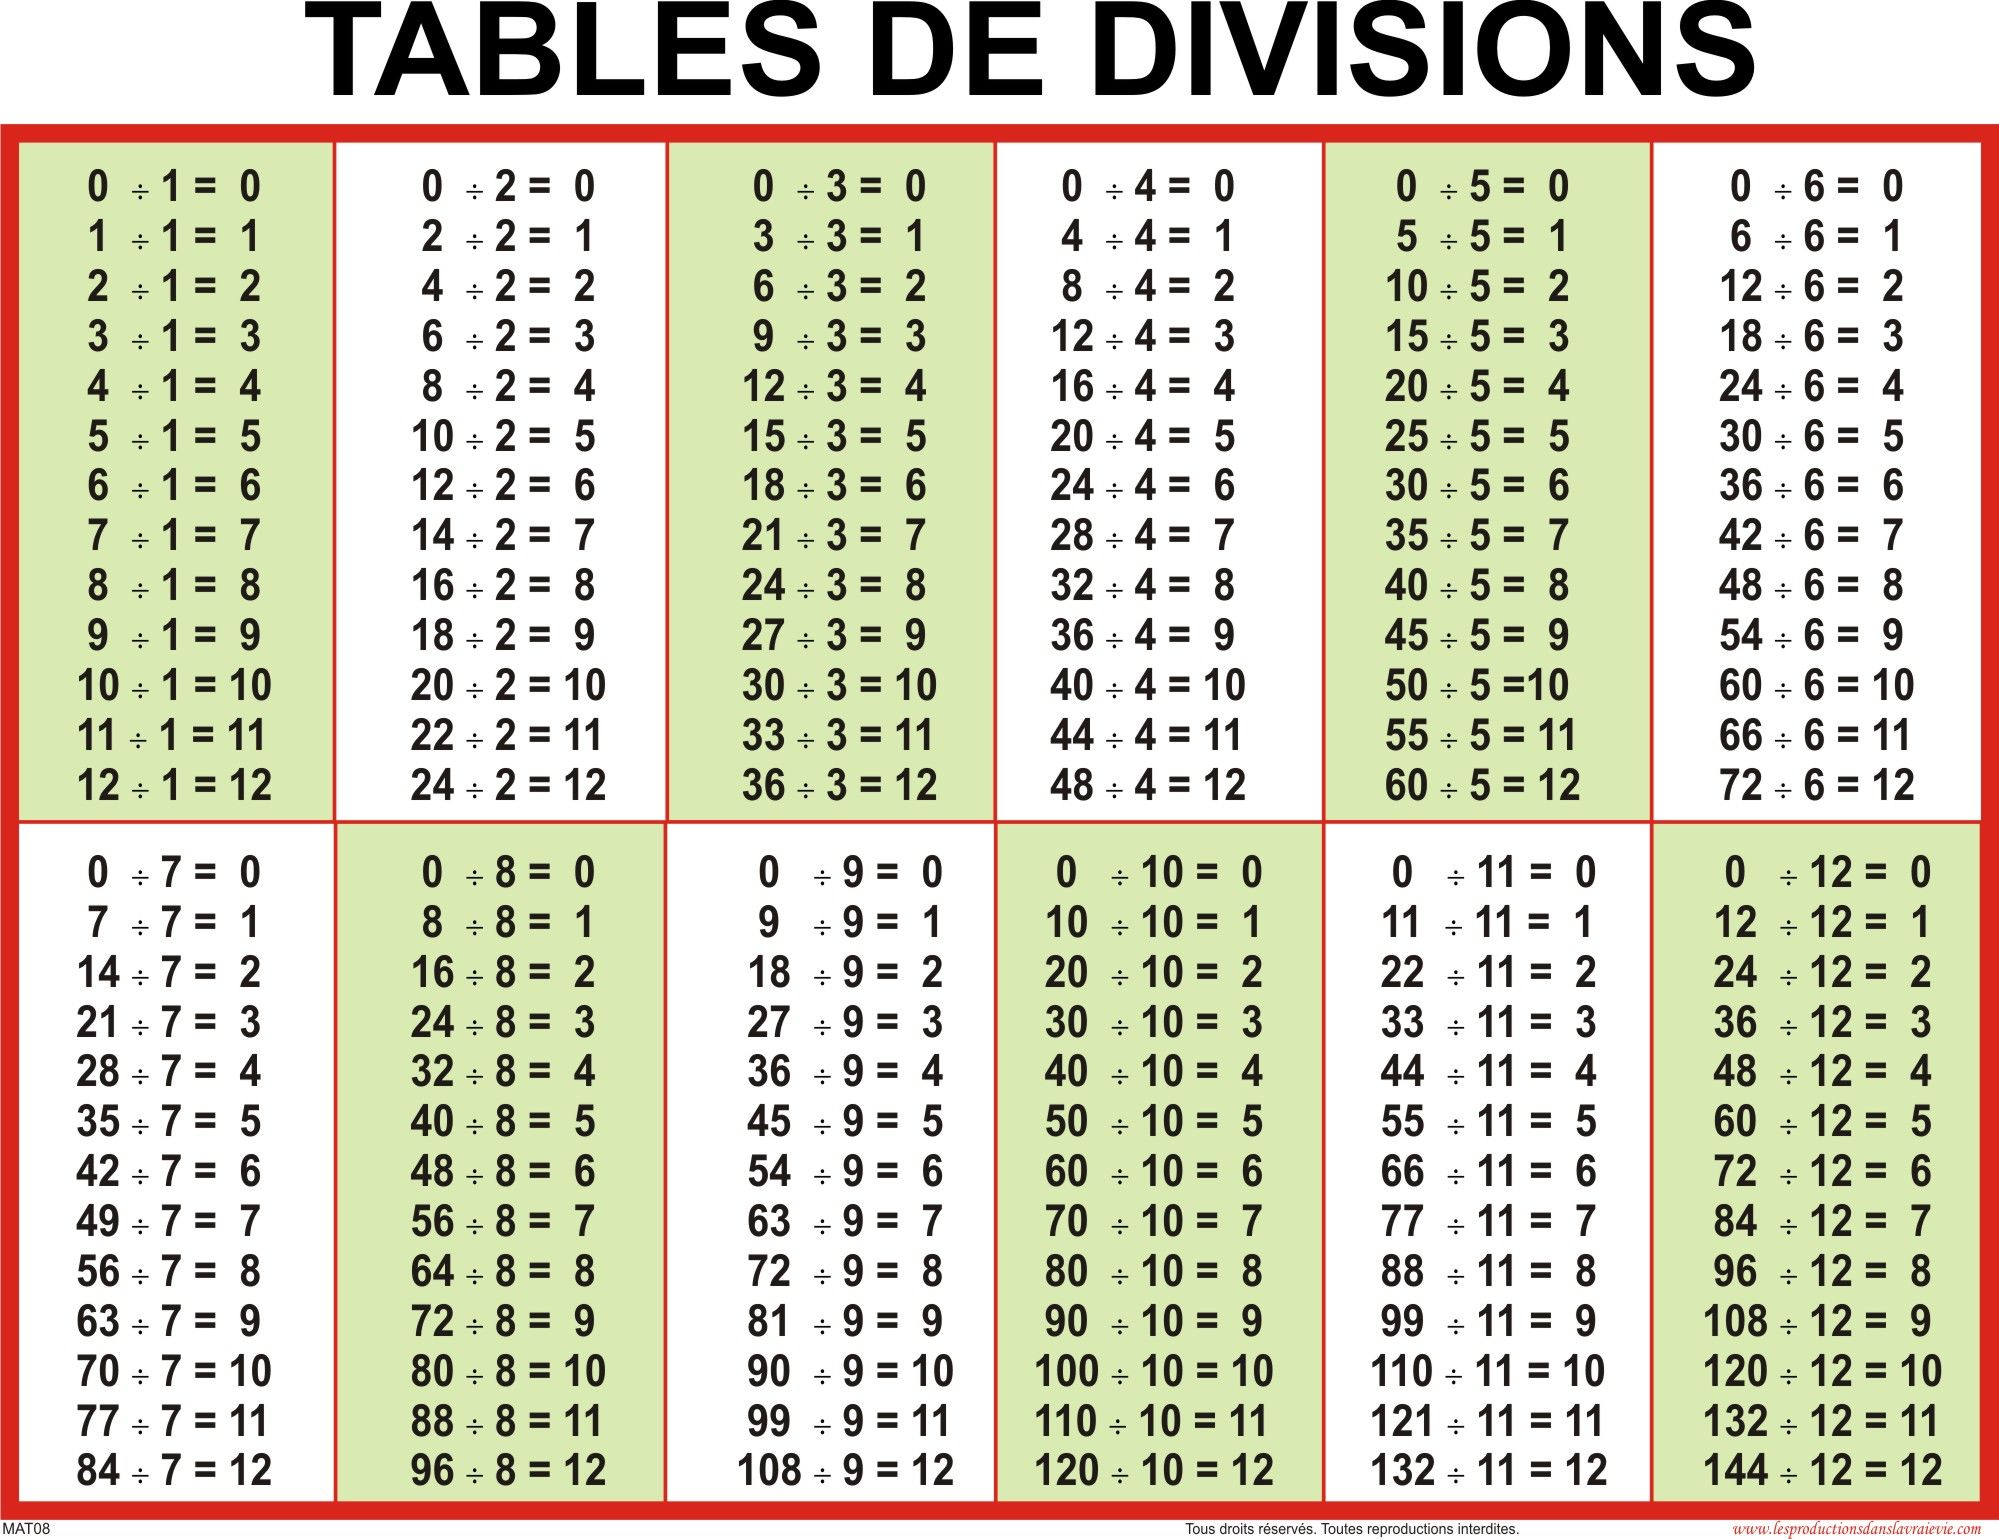 Worksheets Division Table 1-10 Chart division table chart printable 1 12 free table